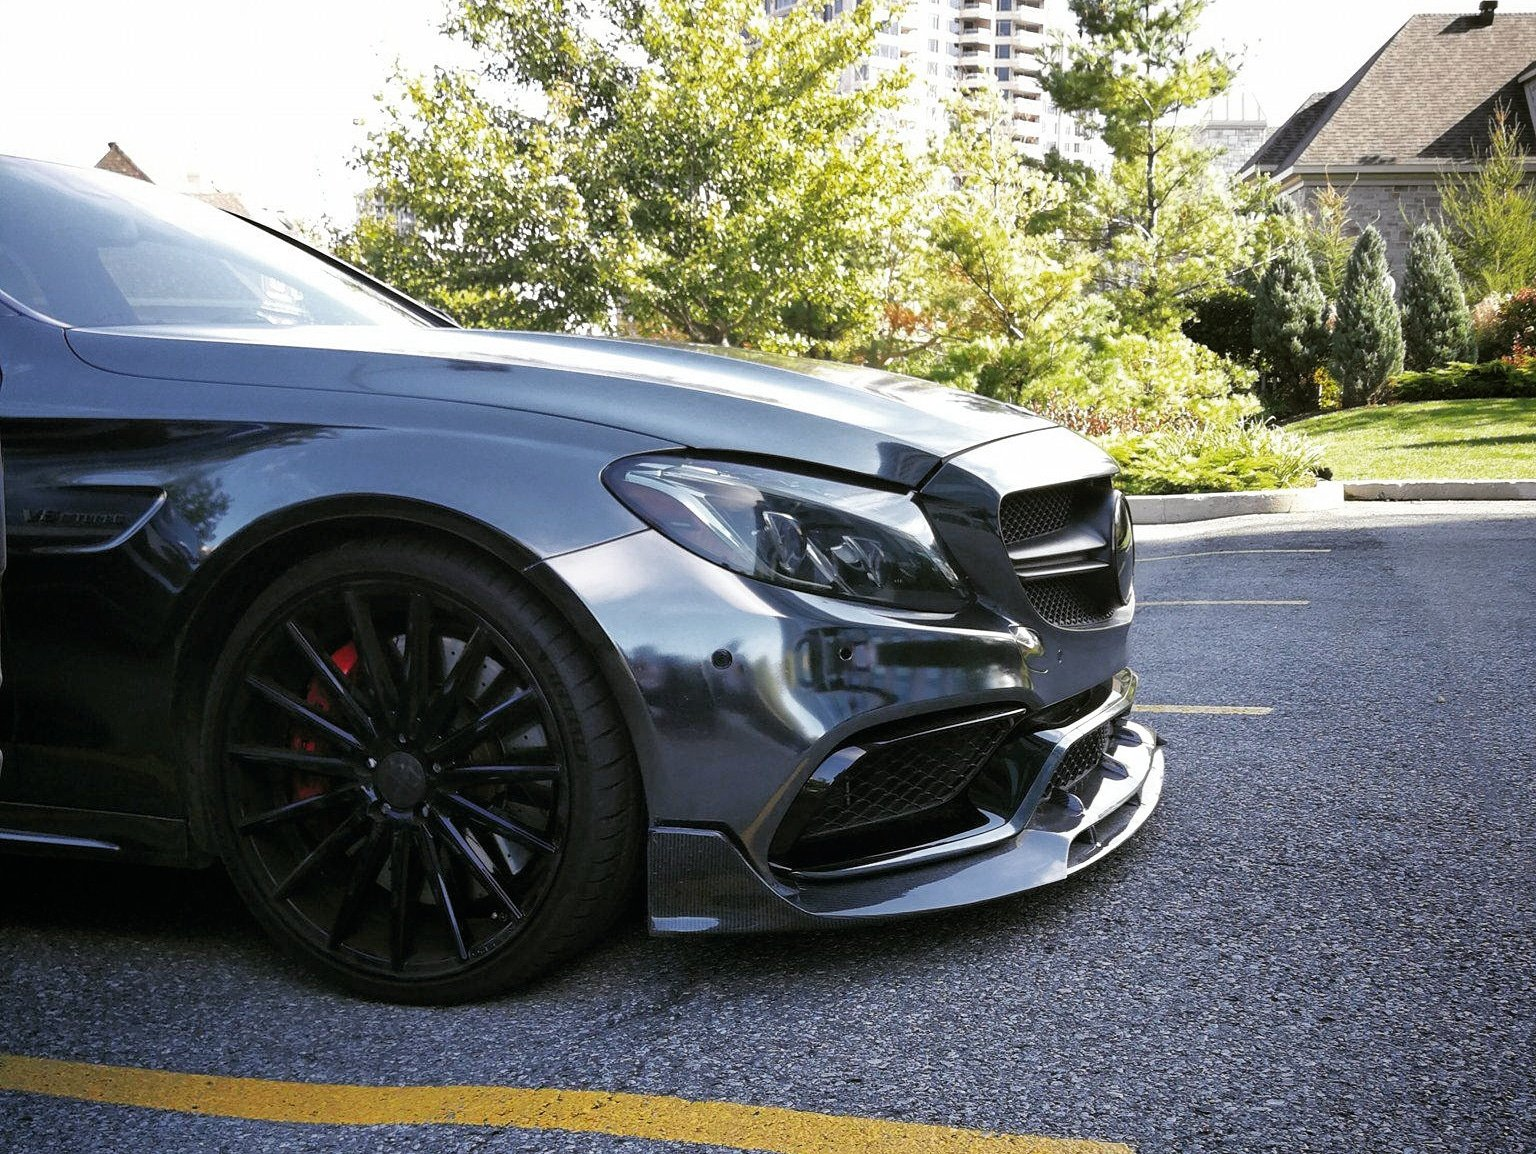 BRS STYLE FRONT LIP (C63 AMG ONLY) -  - Yomato Carbon - Montreal Canada